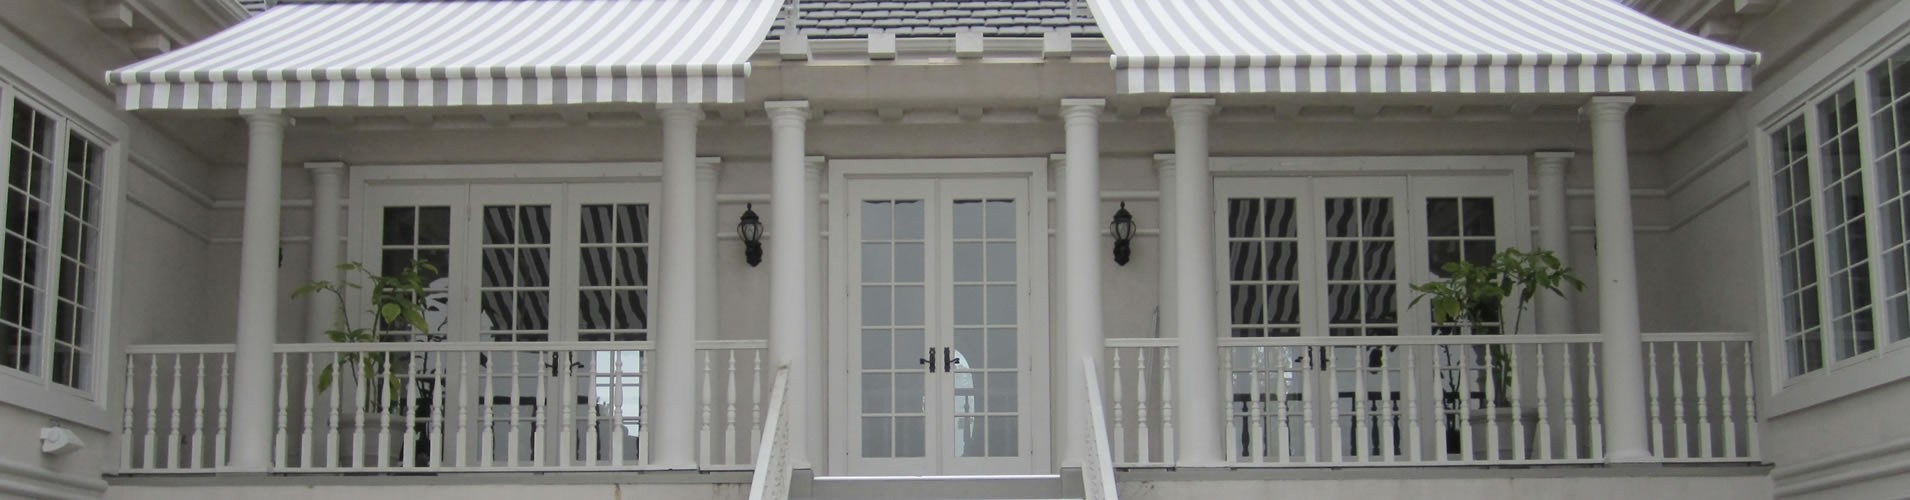 Awnings for Dallas porch